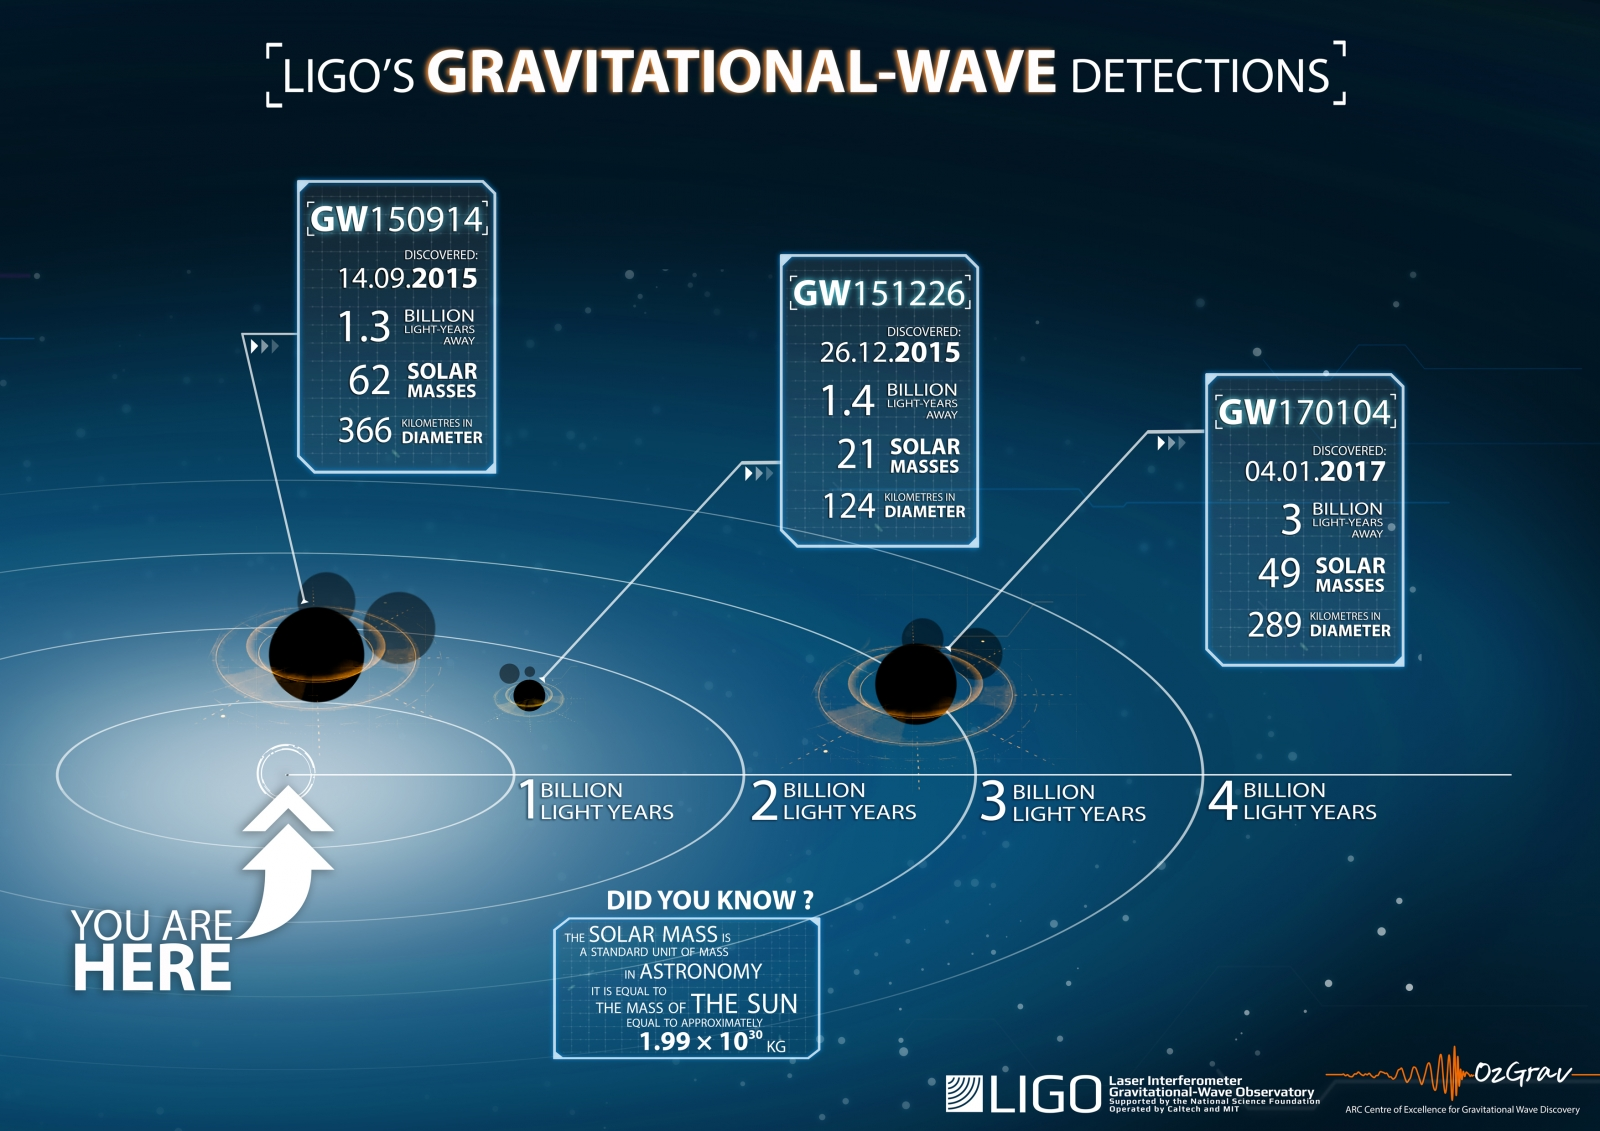 LIGO detects gravitational waves for third time